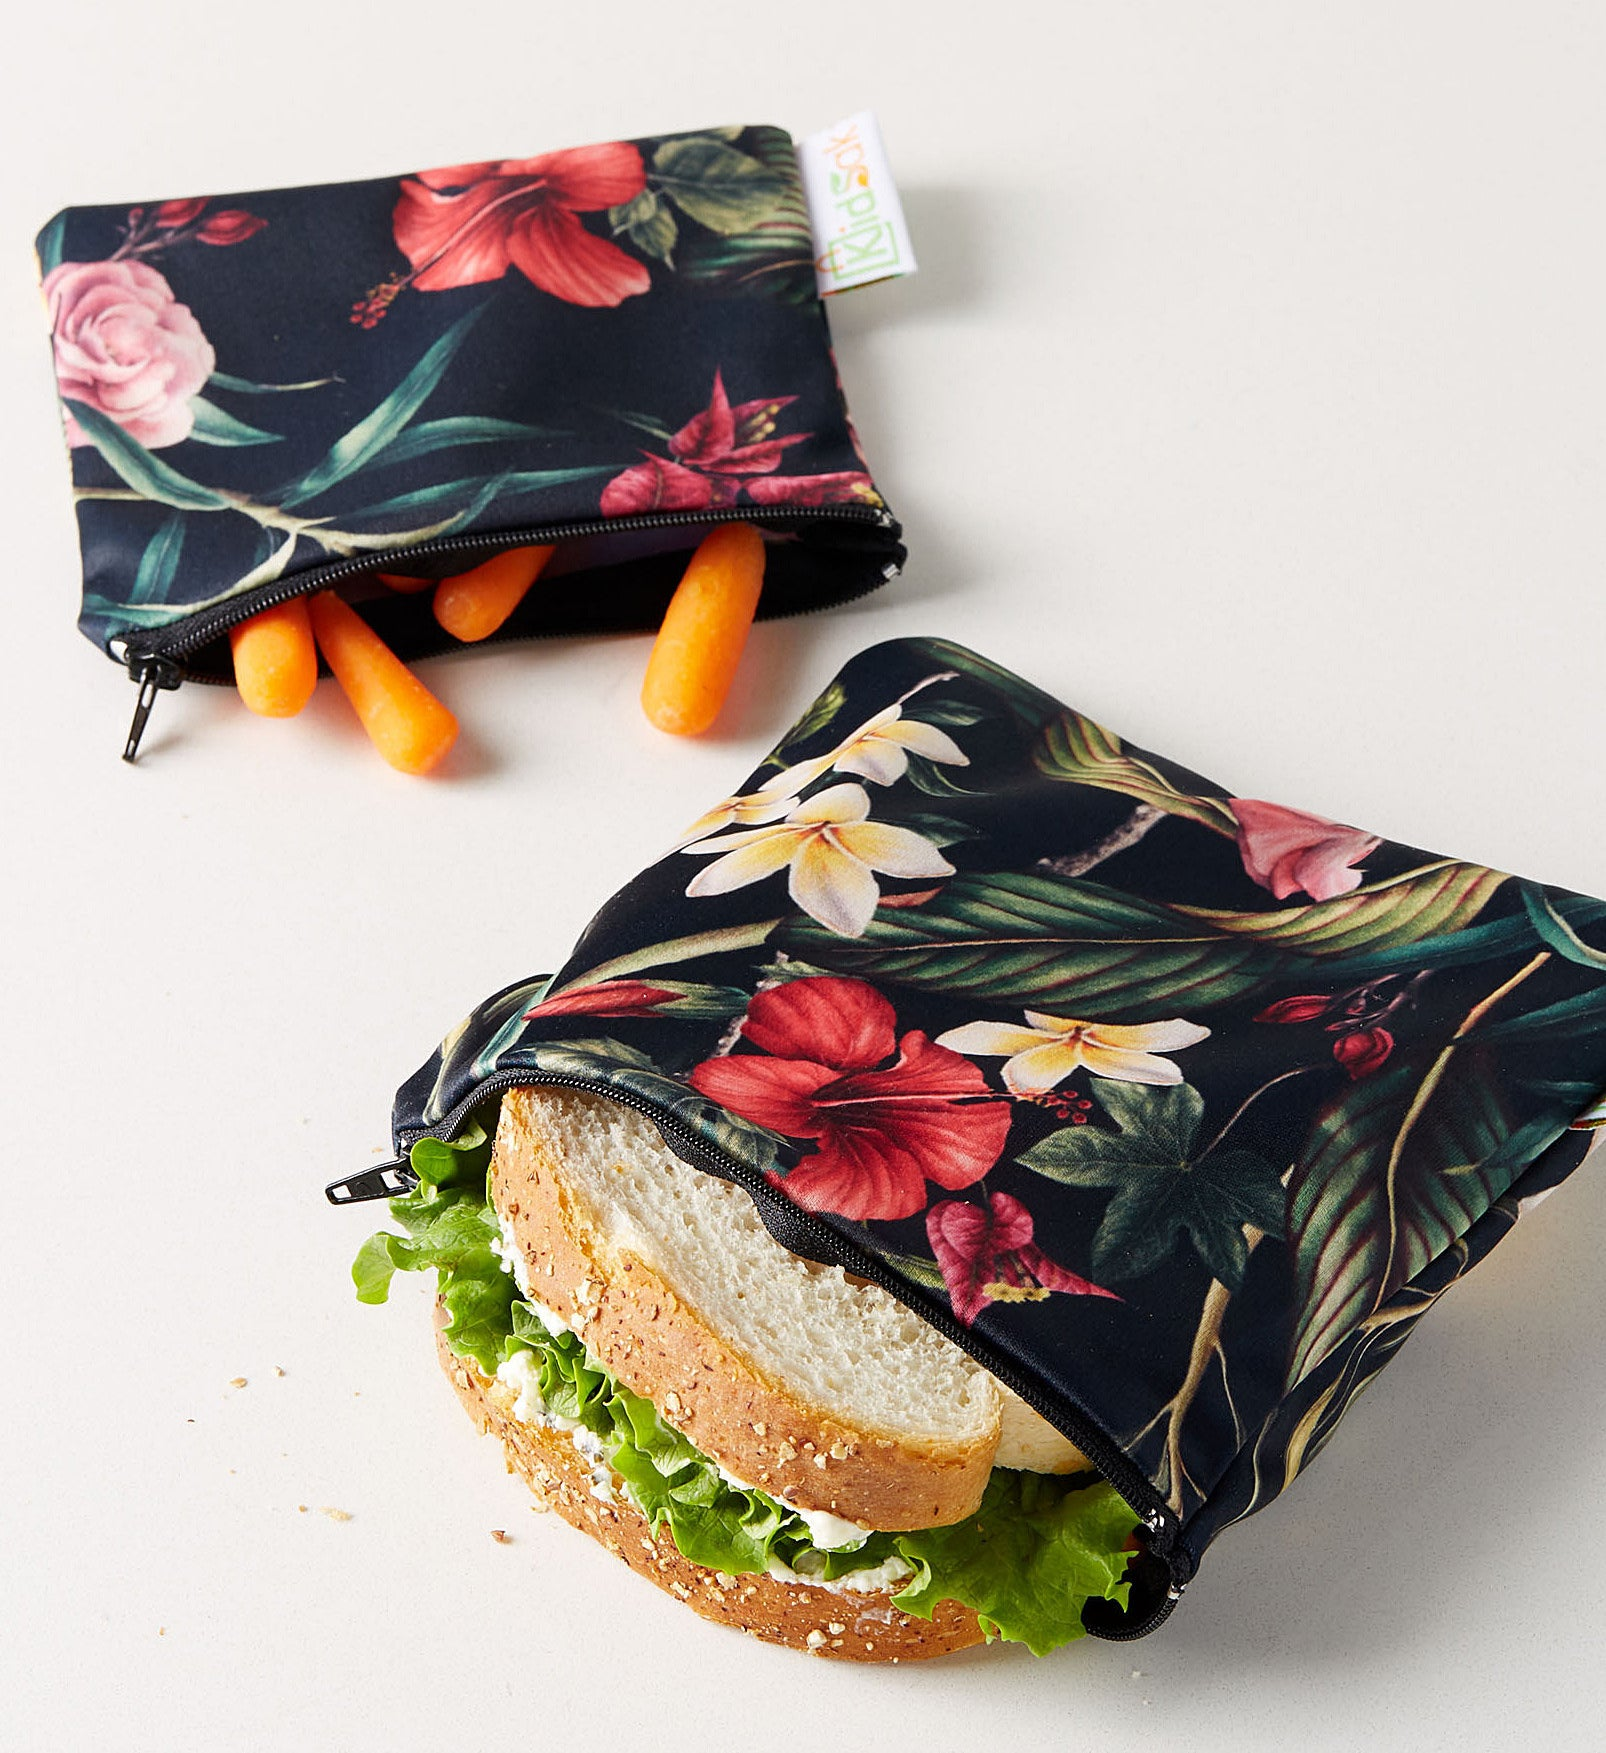 Two floral pouches with snacks inside